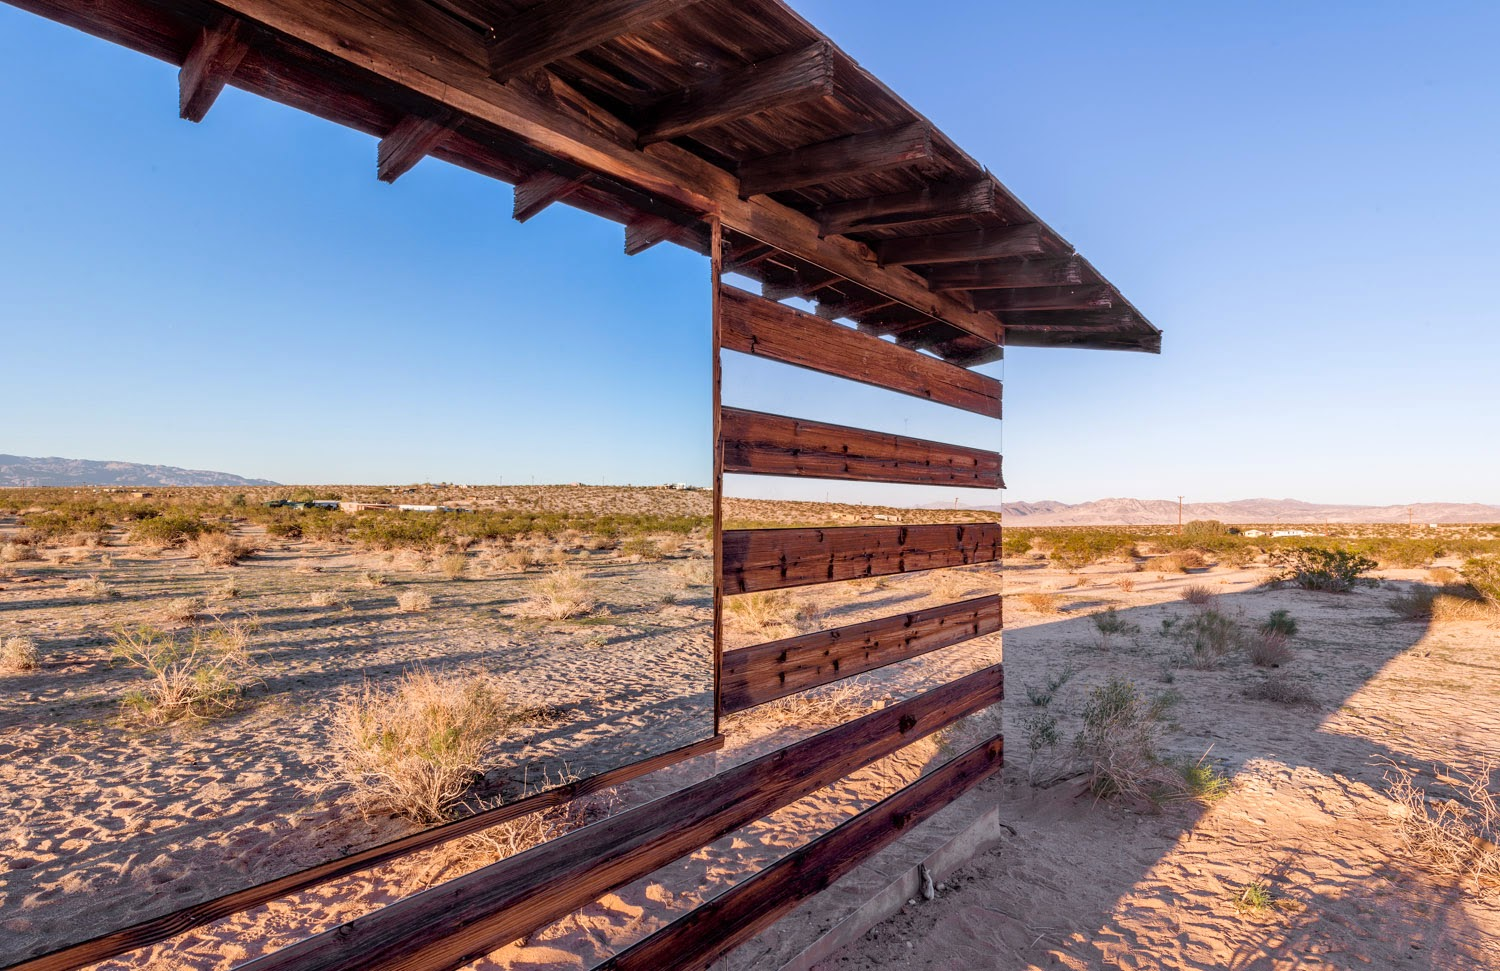 Lucid Stead, Phillip K Smith III, Joshua Tree, California